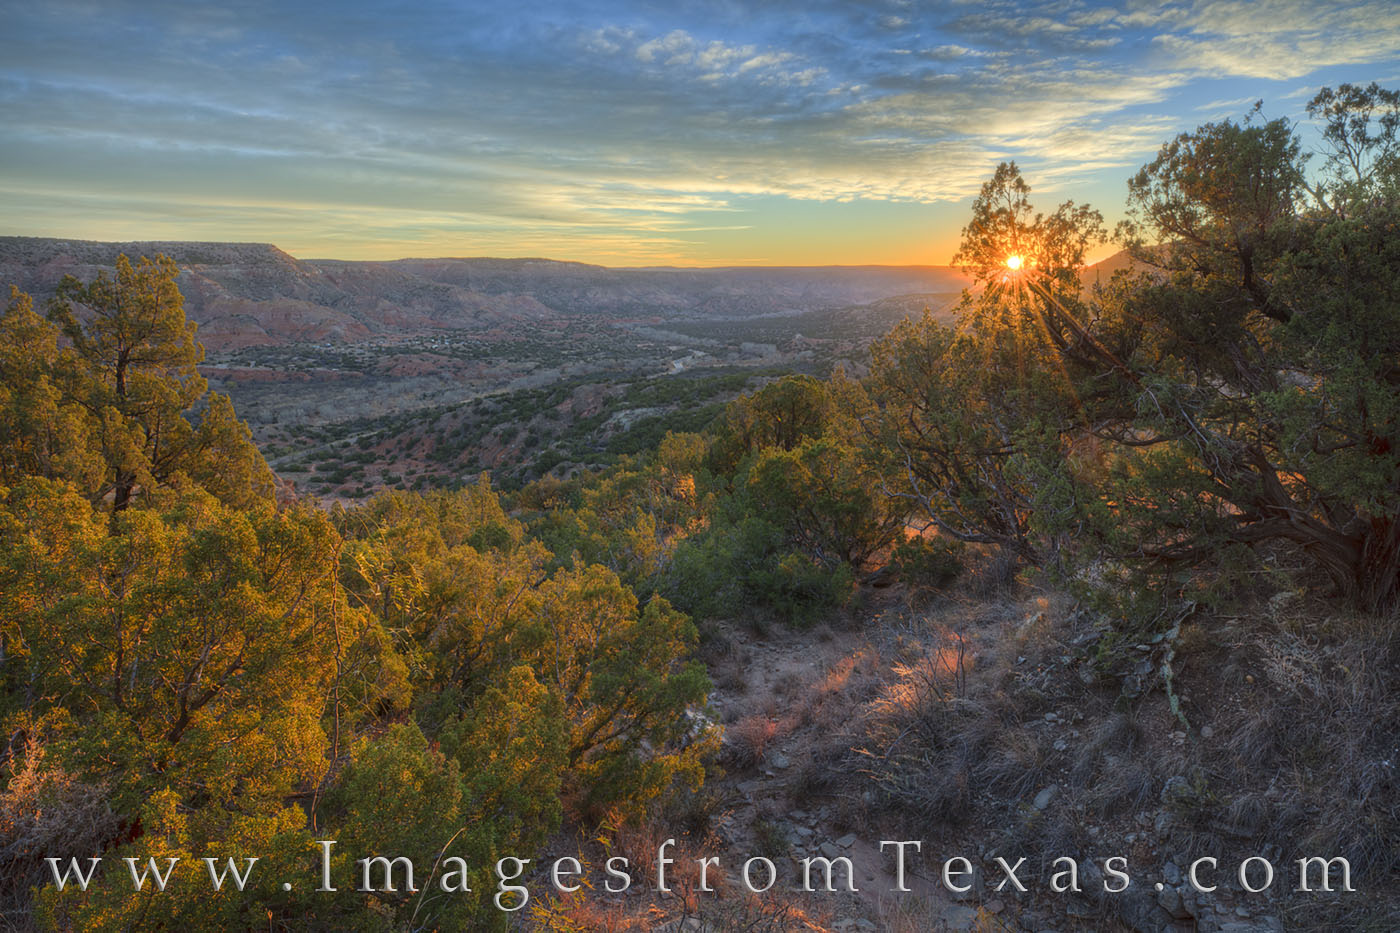 palo duro canyon, texas canyons, texas state parks, exas hiking, hiking texas, texas secrets, texas landscapes, canyon, amarillo, sunrise, texas sunrise, canyon rim, photo